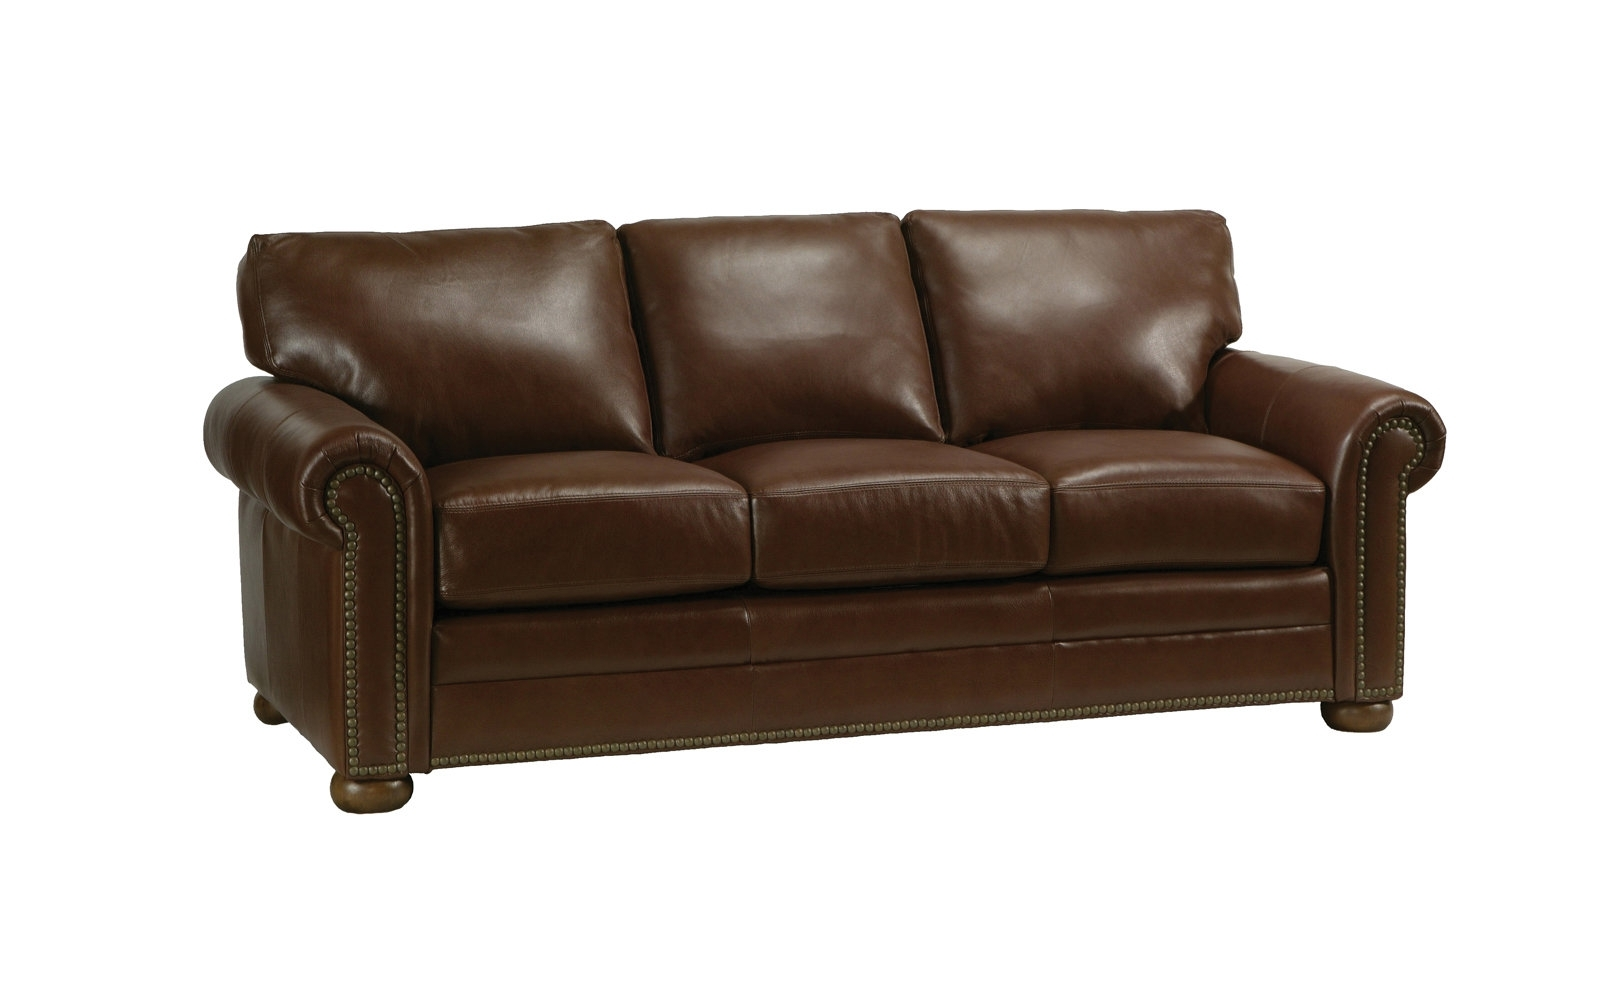 Omnia Leather | Wayfair Intended For Delano Smoke 3 Piece Sectionals (Image 15 of 25)